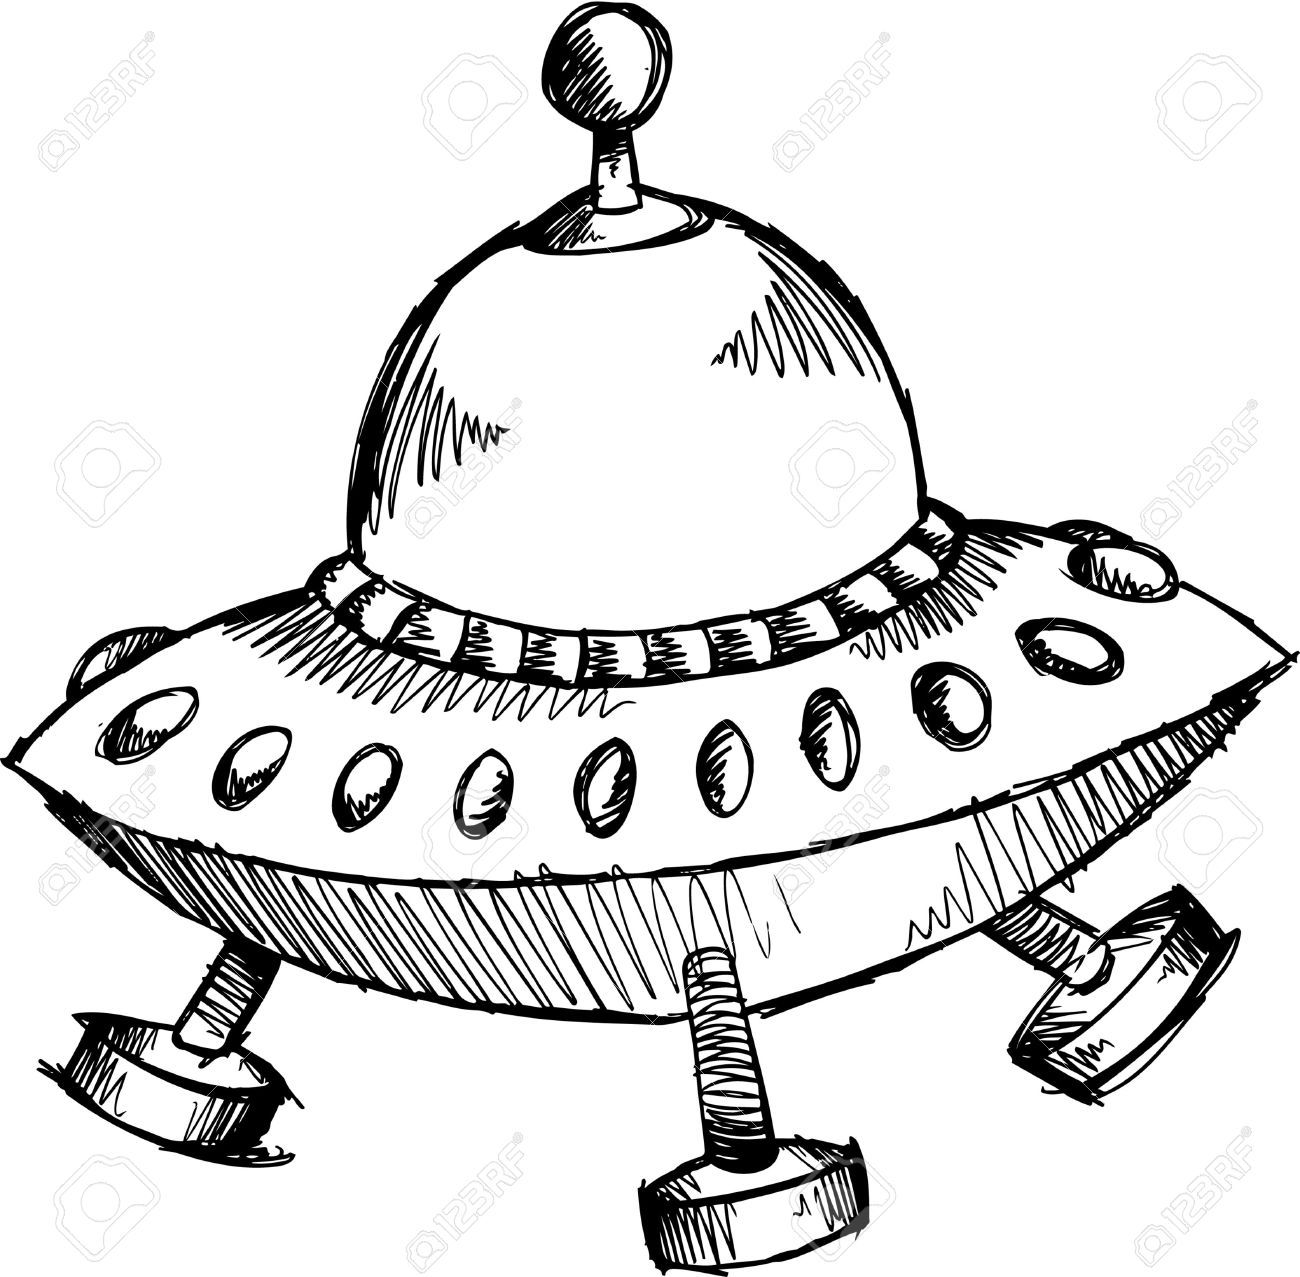 6784493 doodle sketchy spaceship illustration stock vector